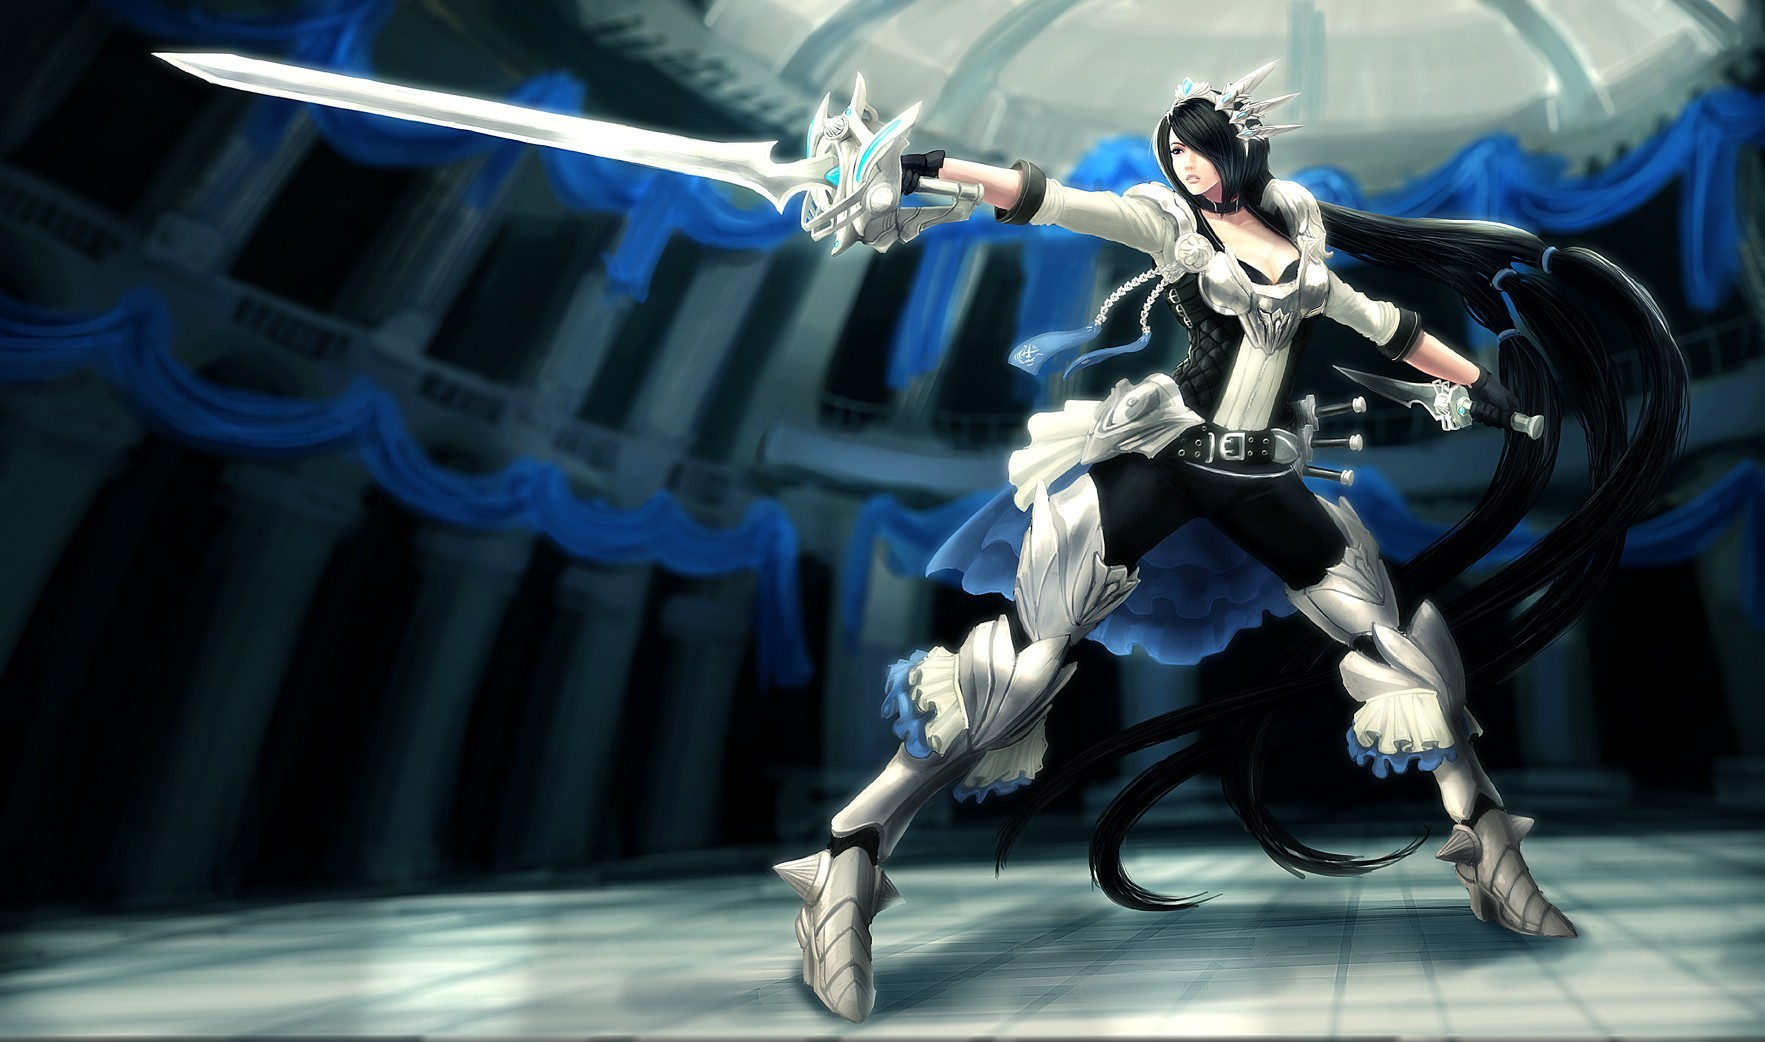 General 1765x1042 League of Legends Fiora (League of Legends) PC gaming anime girls anime sword fantasy girl